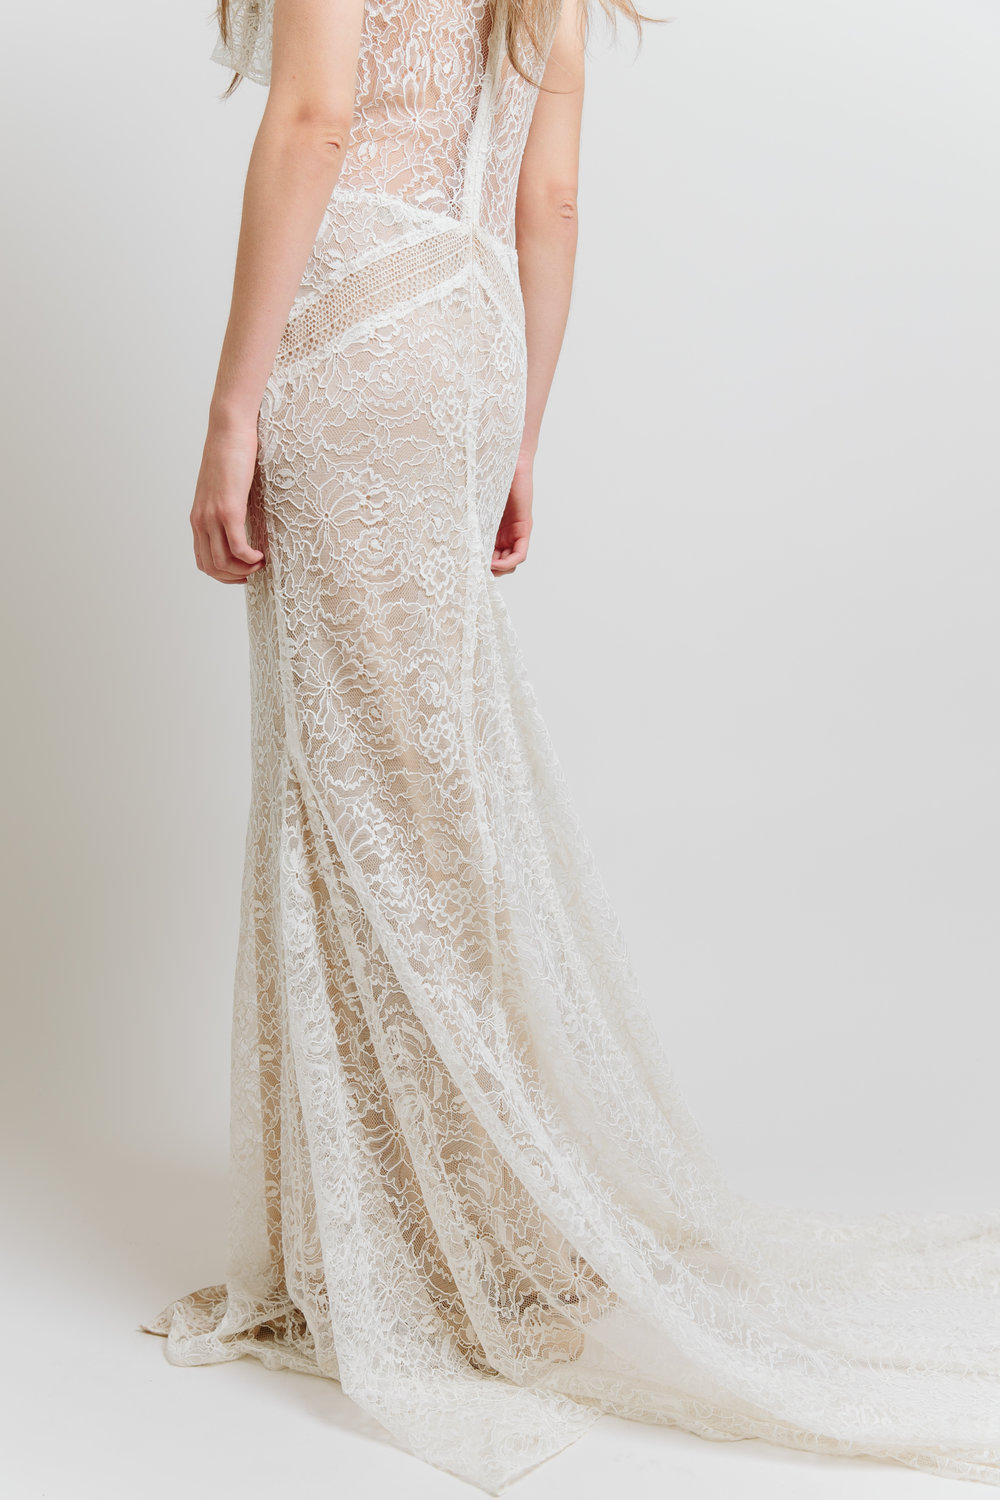 sarah seven bridal gowns